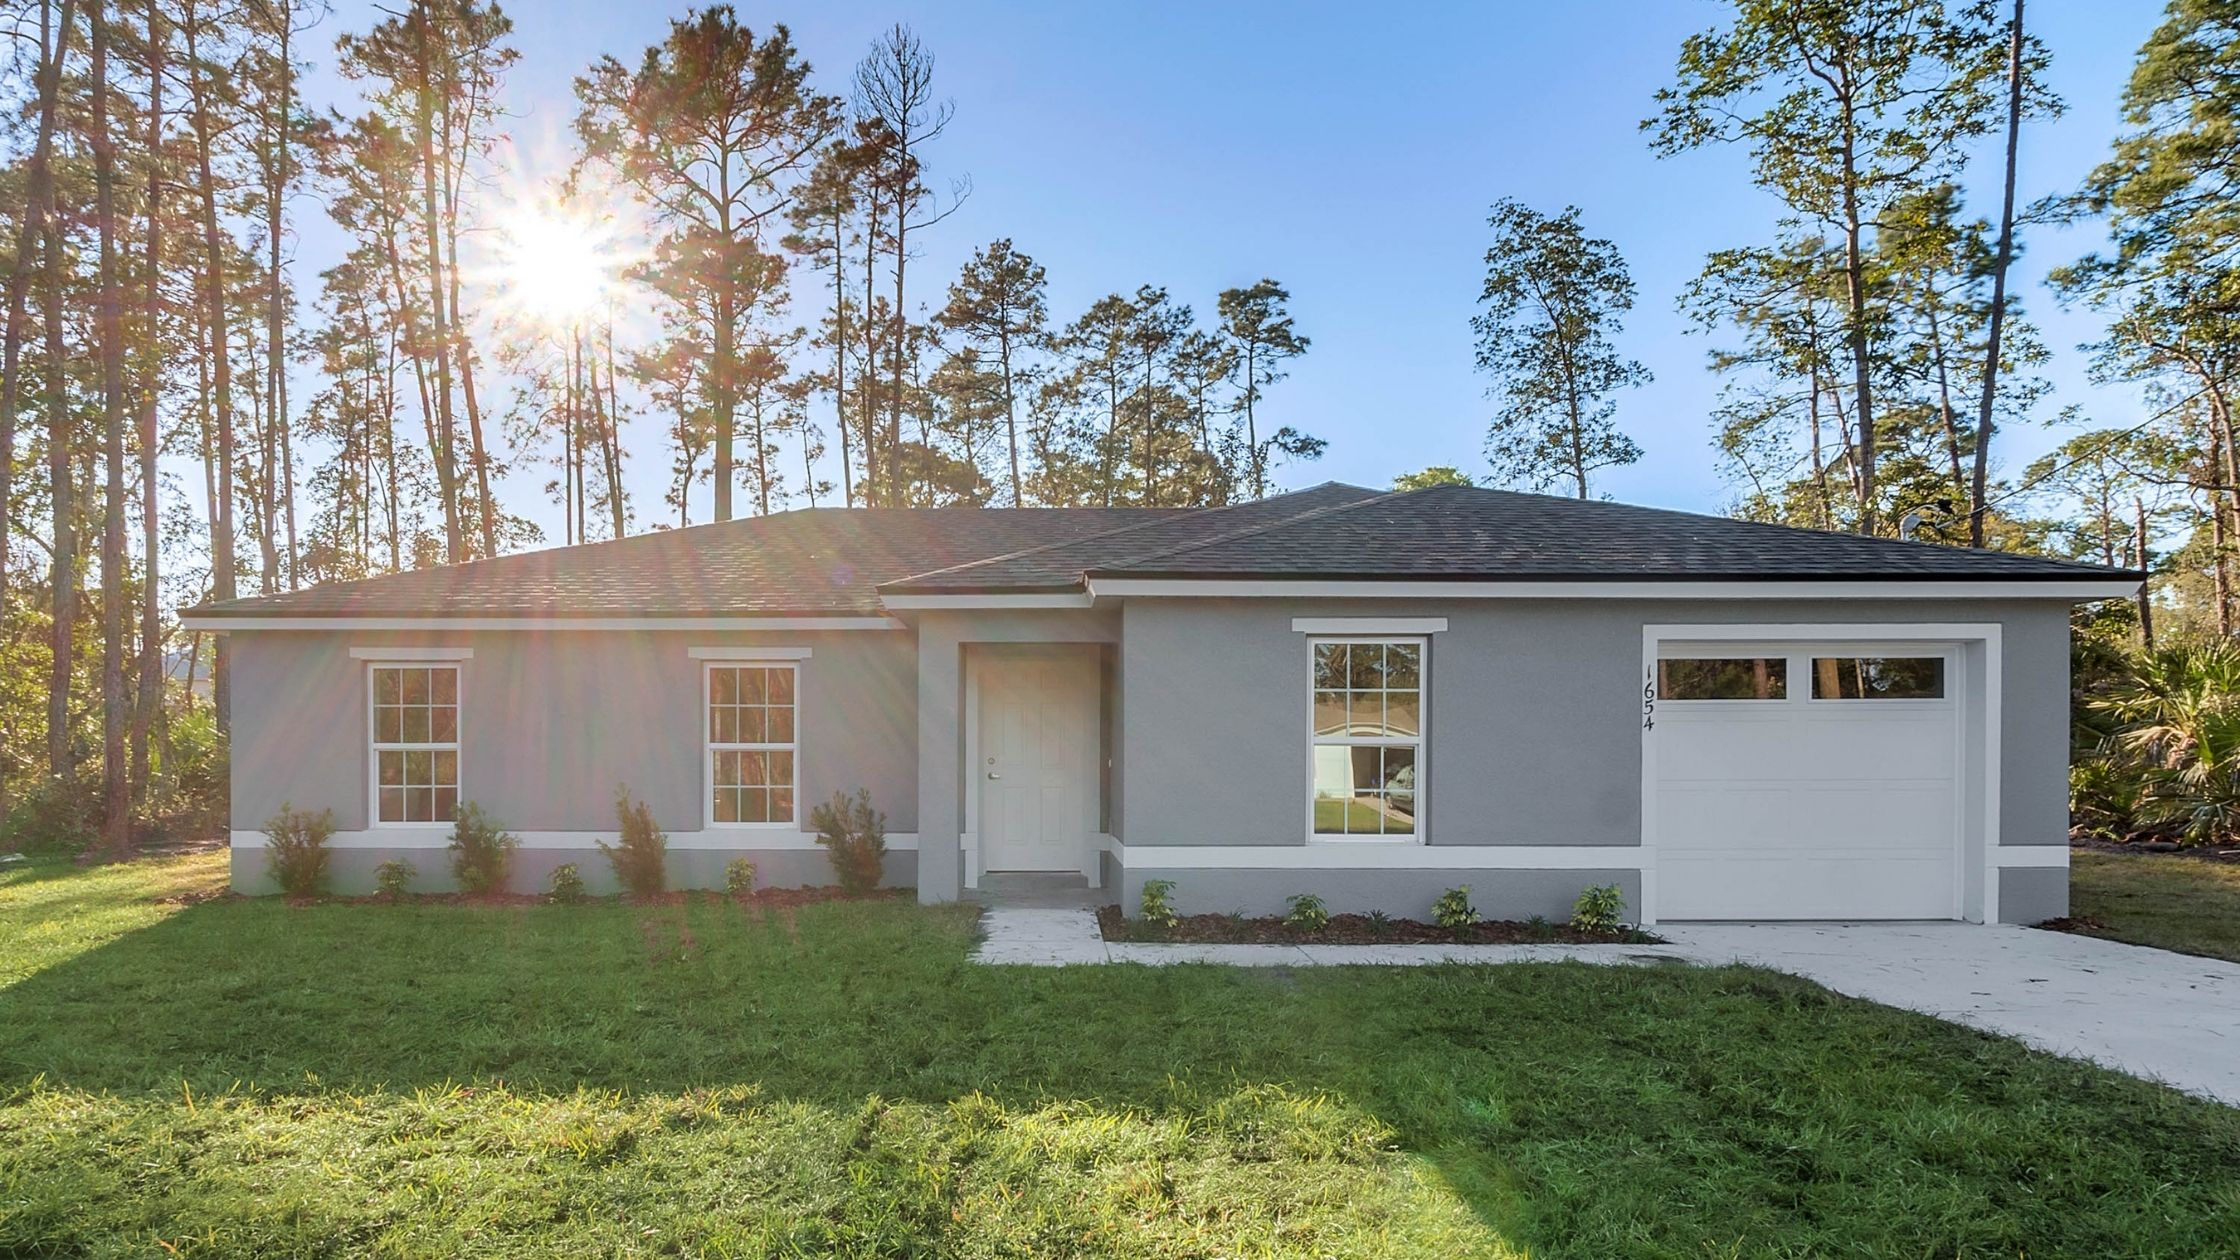 Thinking About Building A DeLand Home? Here's What You Need To Know